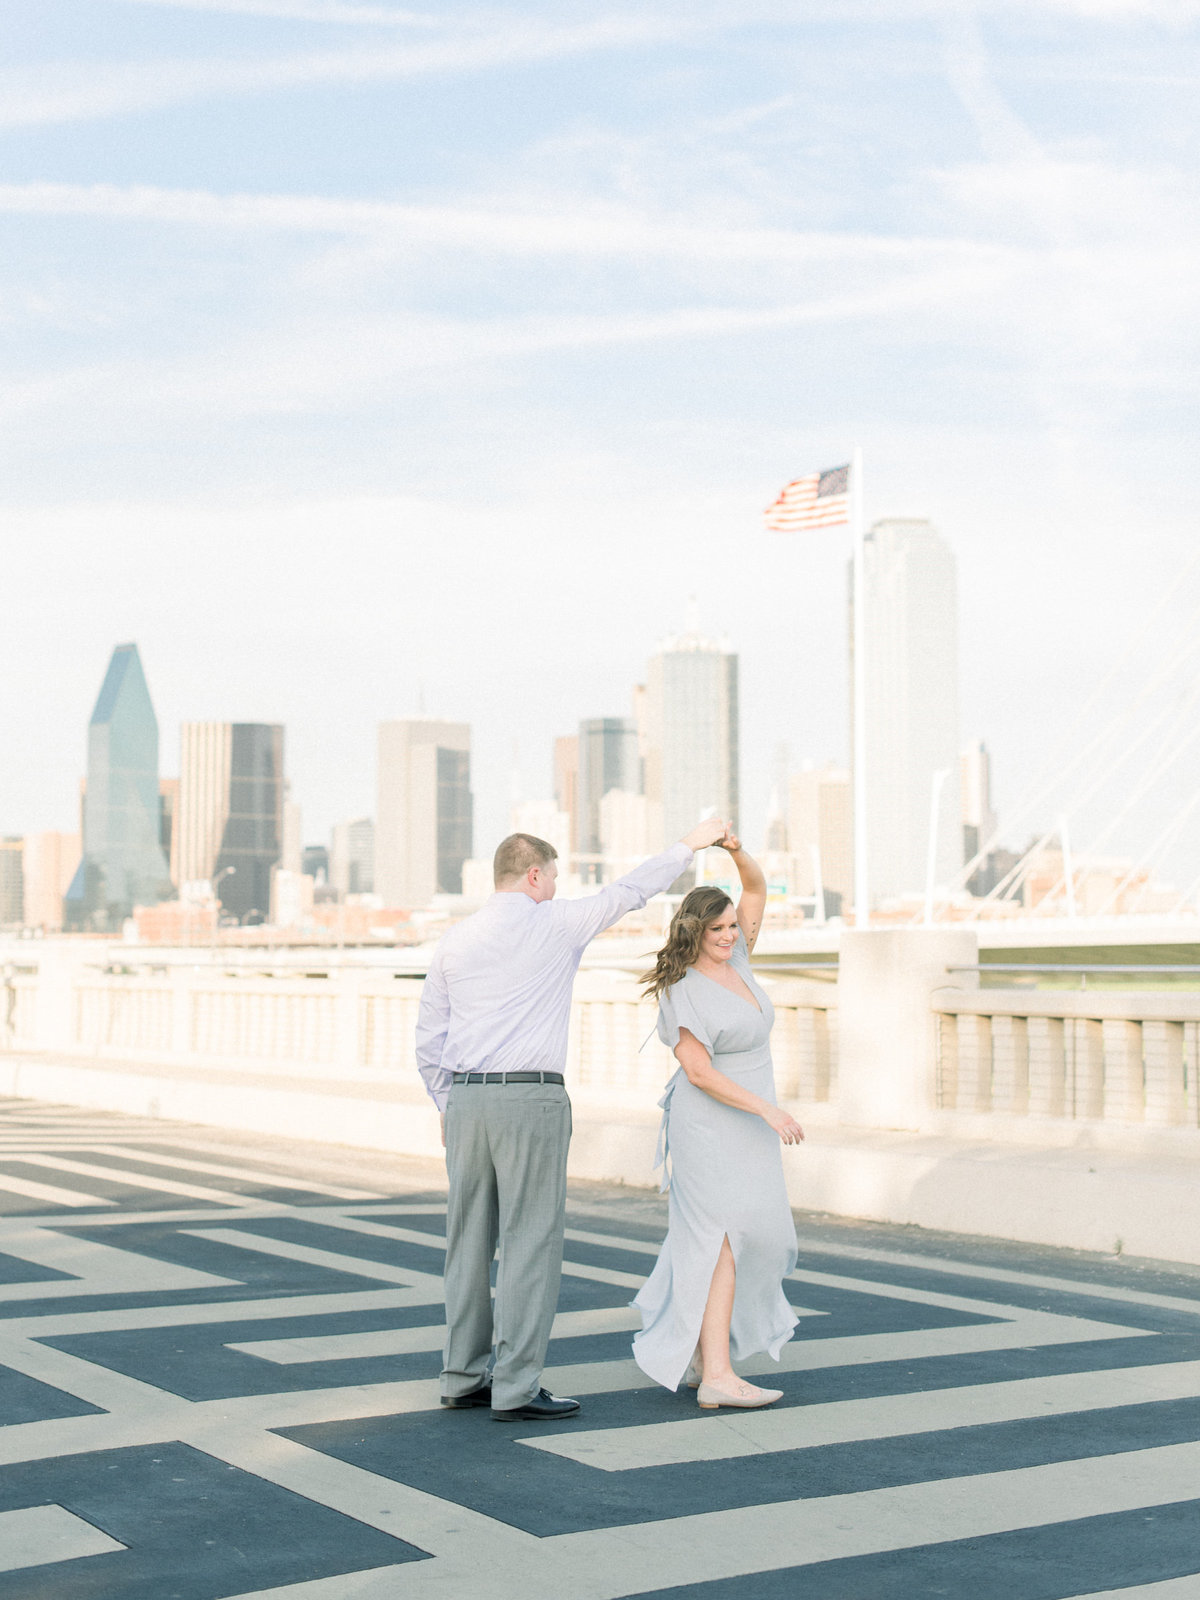 Courtney Hanson Photography - Downtown Dallas Engagement Session-7332